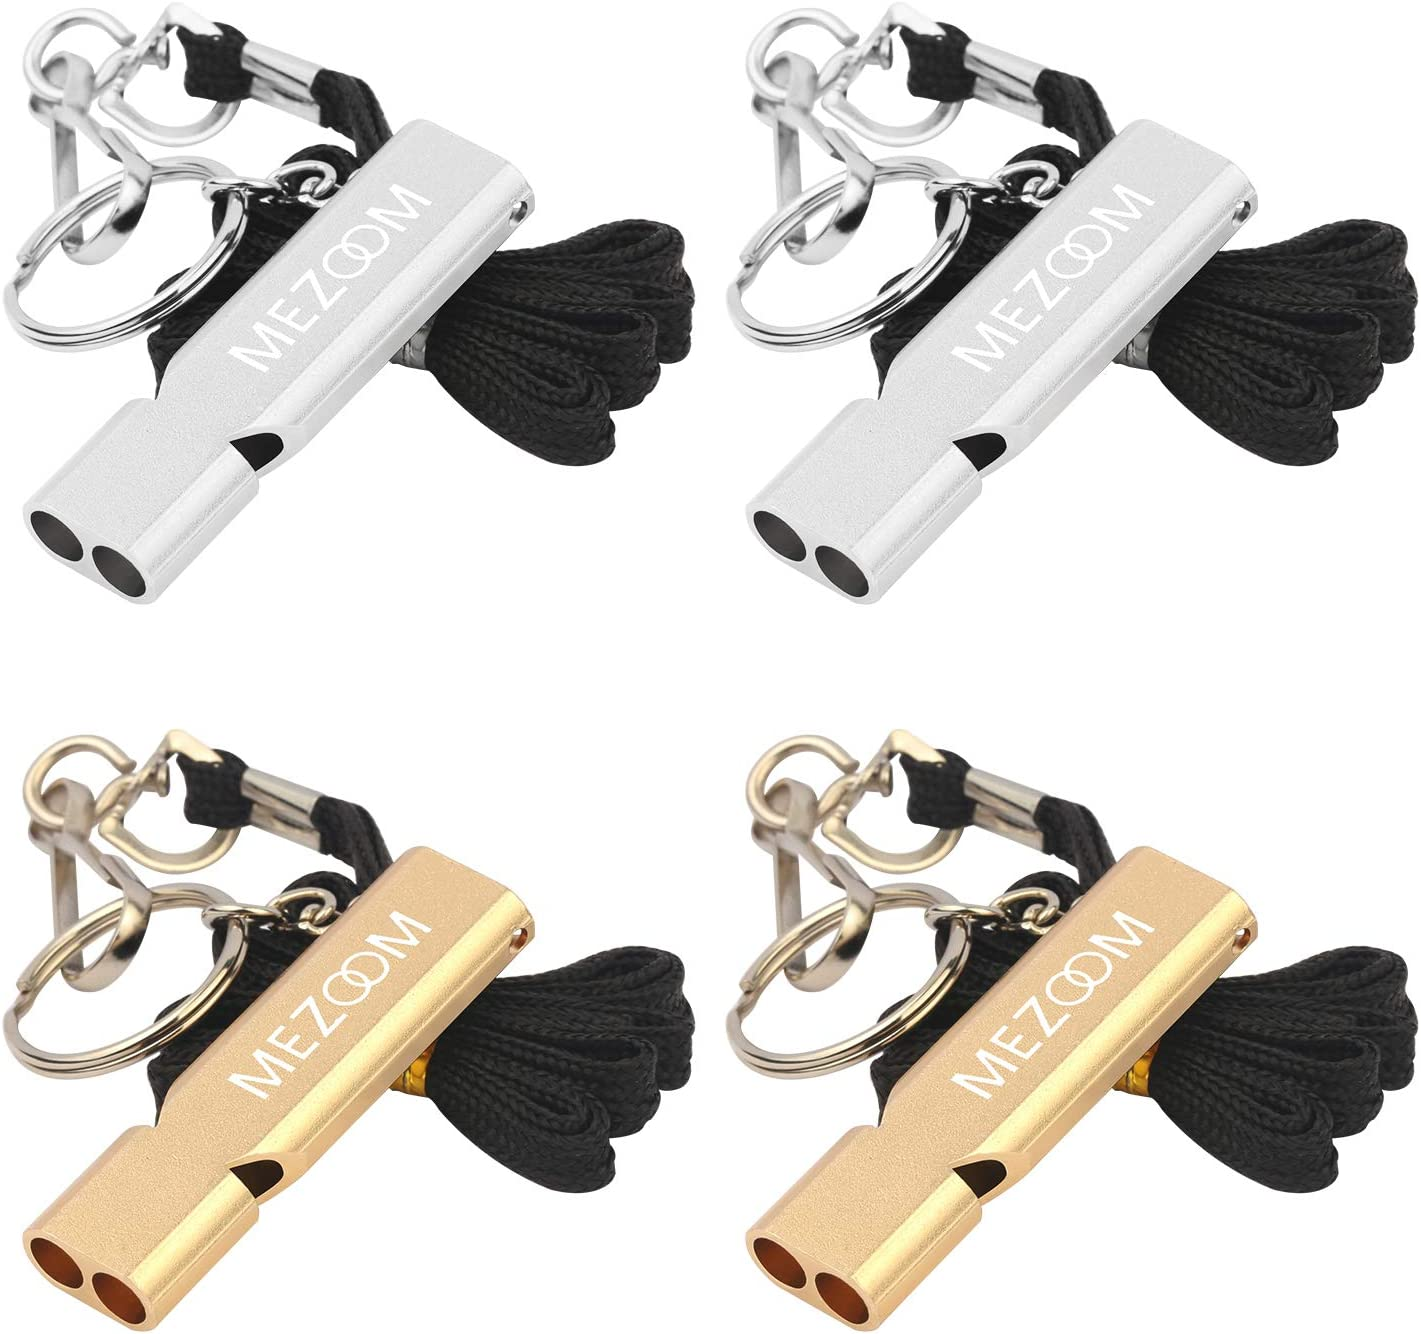 1pc 10mm brass EDC Emergency Safety Survival Whistle Keychain For Camping ToHFUK